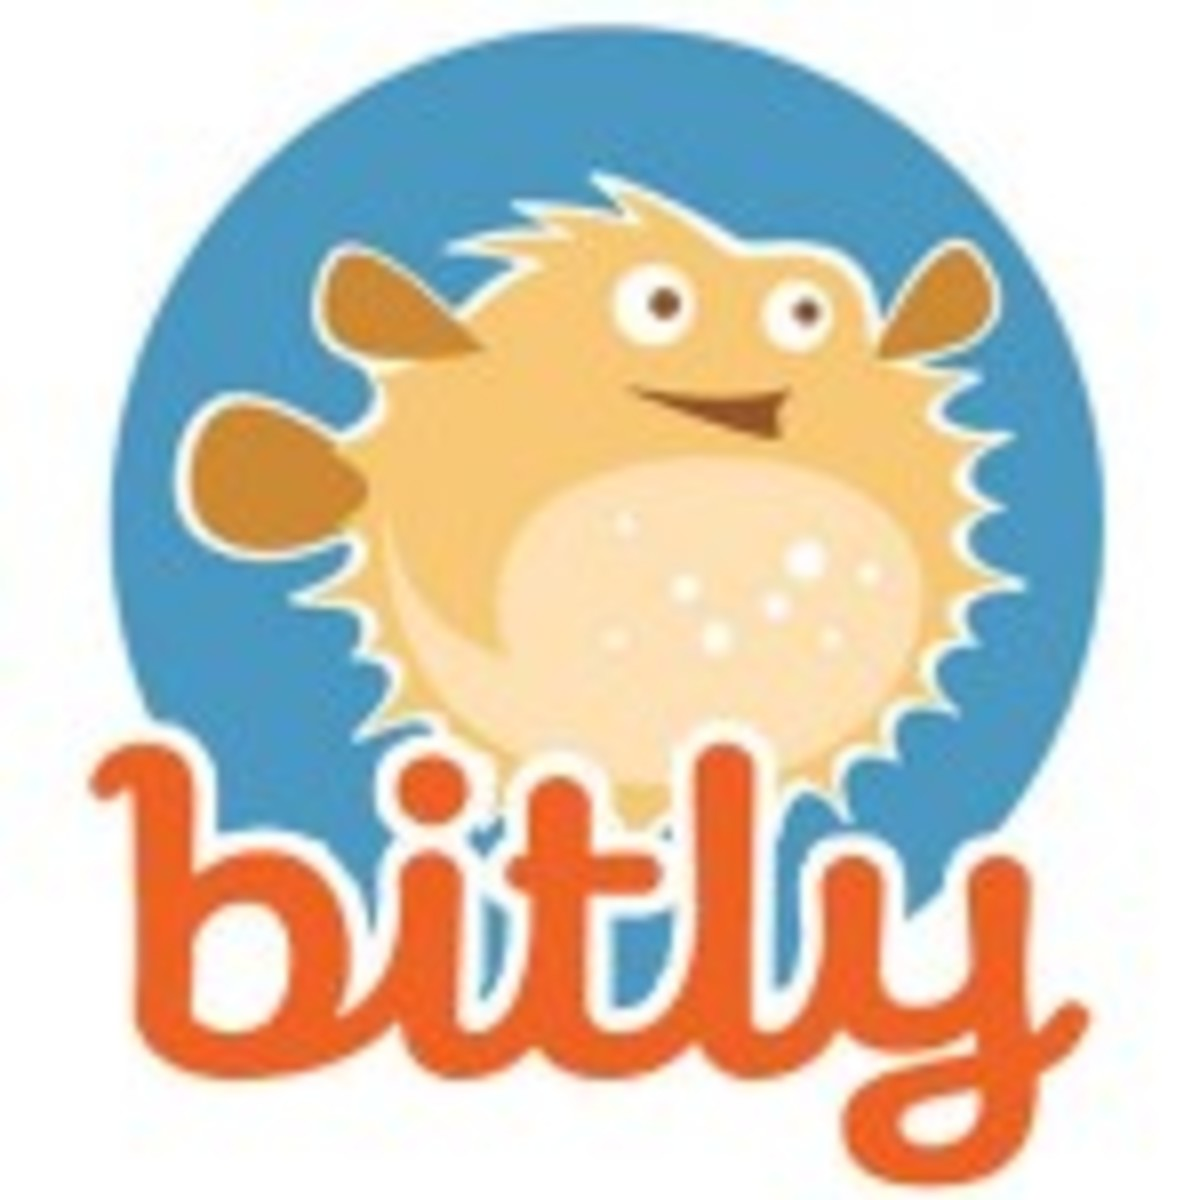 Bitly is better - avoid overwriting